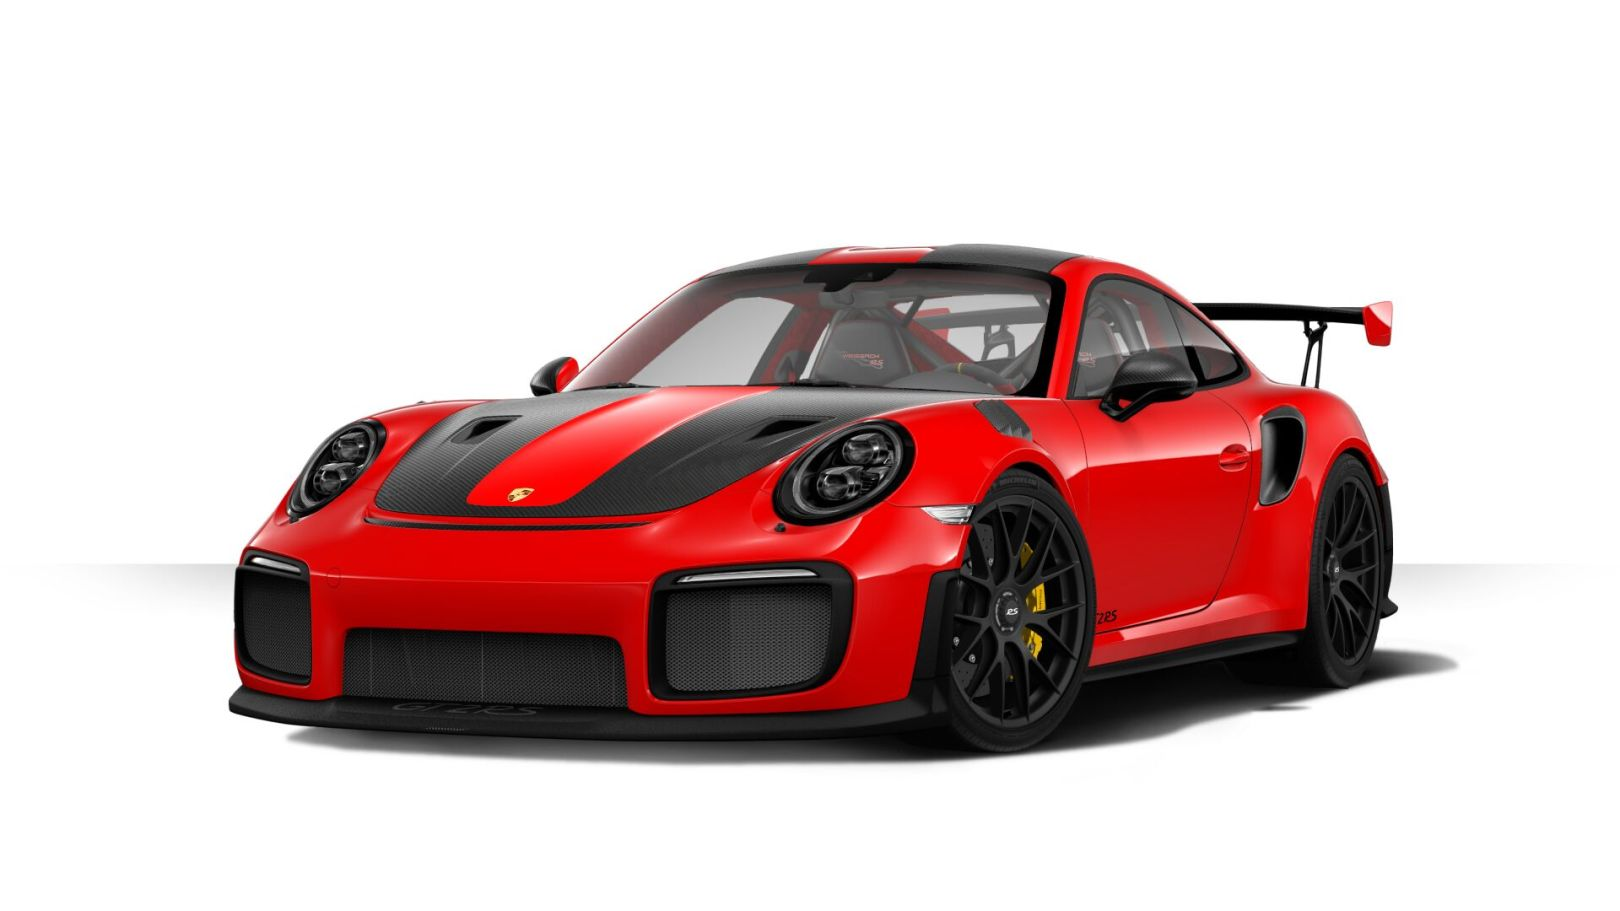 porsche s new configurator lets you build your own 911 gt2 rs and more idle. Black Bedroom Furniture Sets. Home Design Ideas